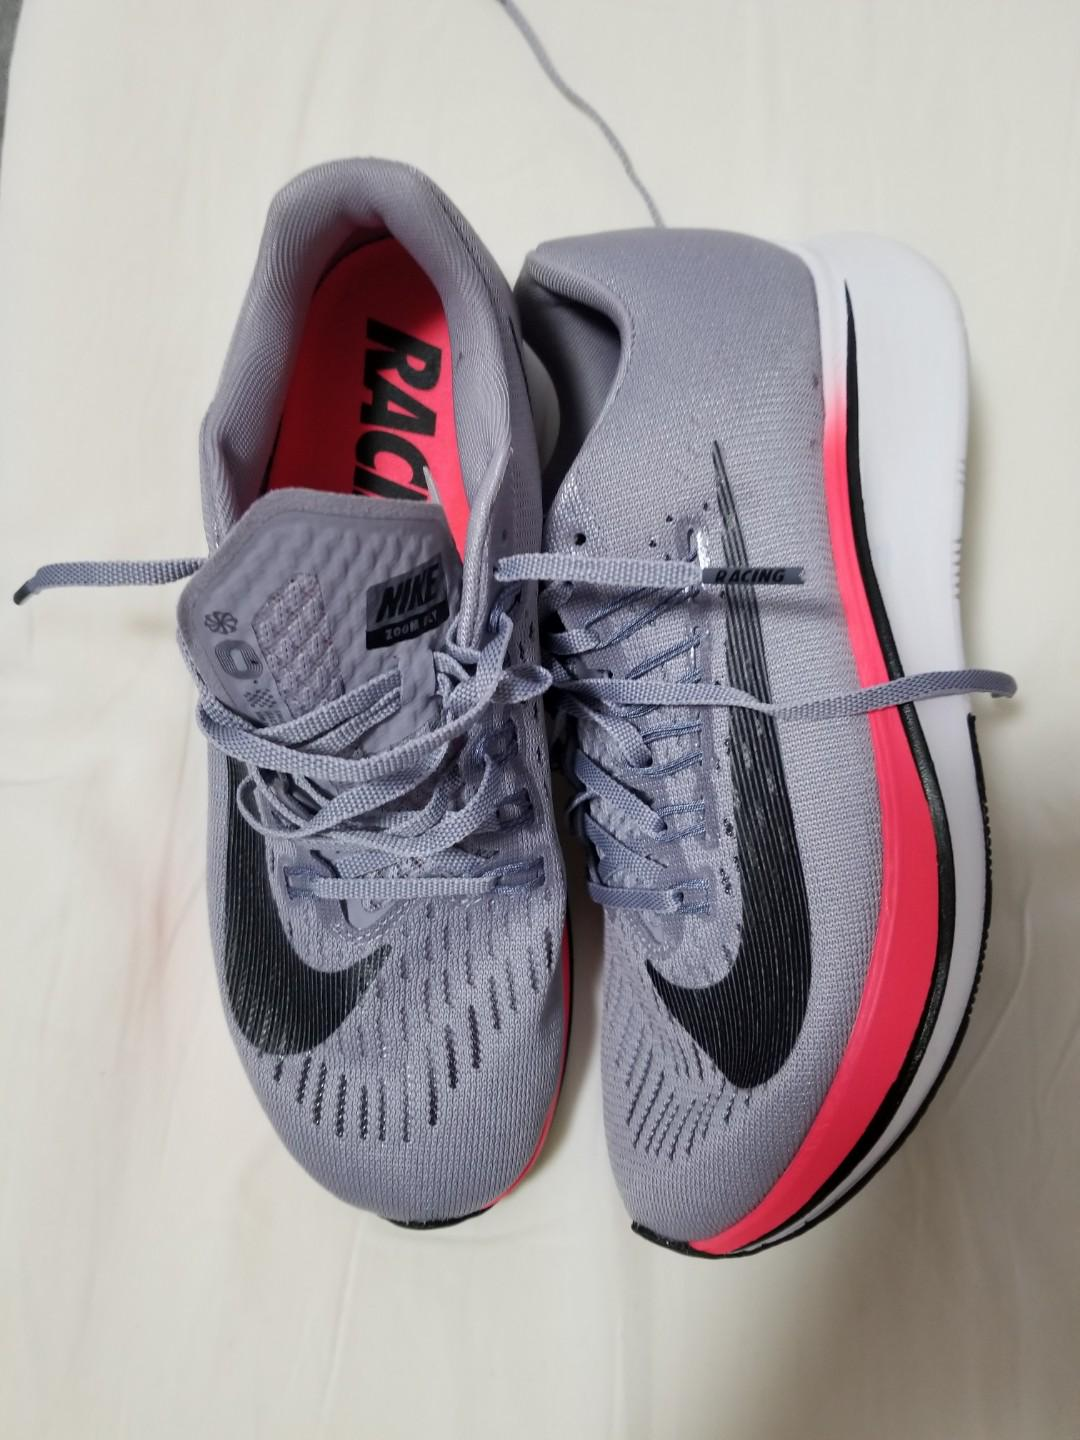 NIKE ZOOM FLY SIZE 7US WOMSN